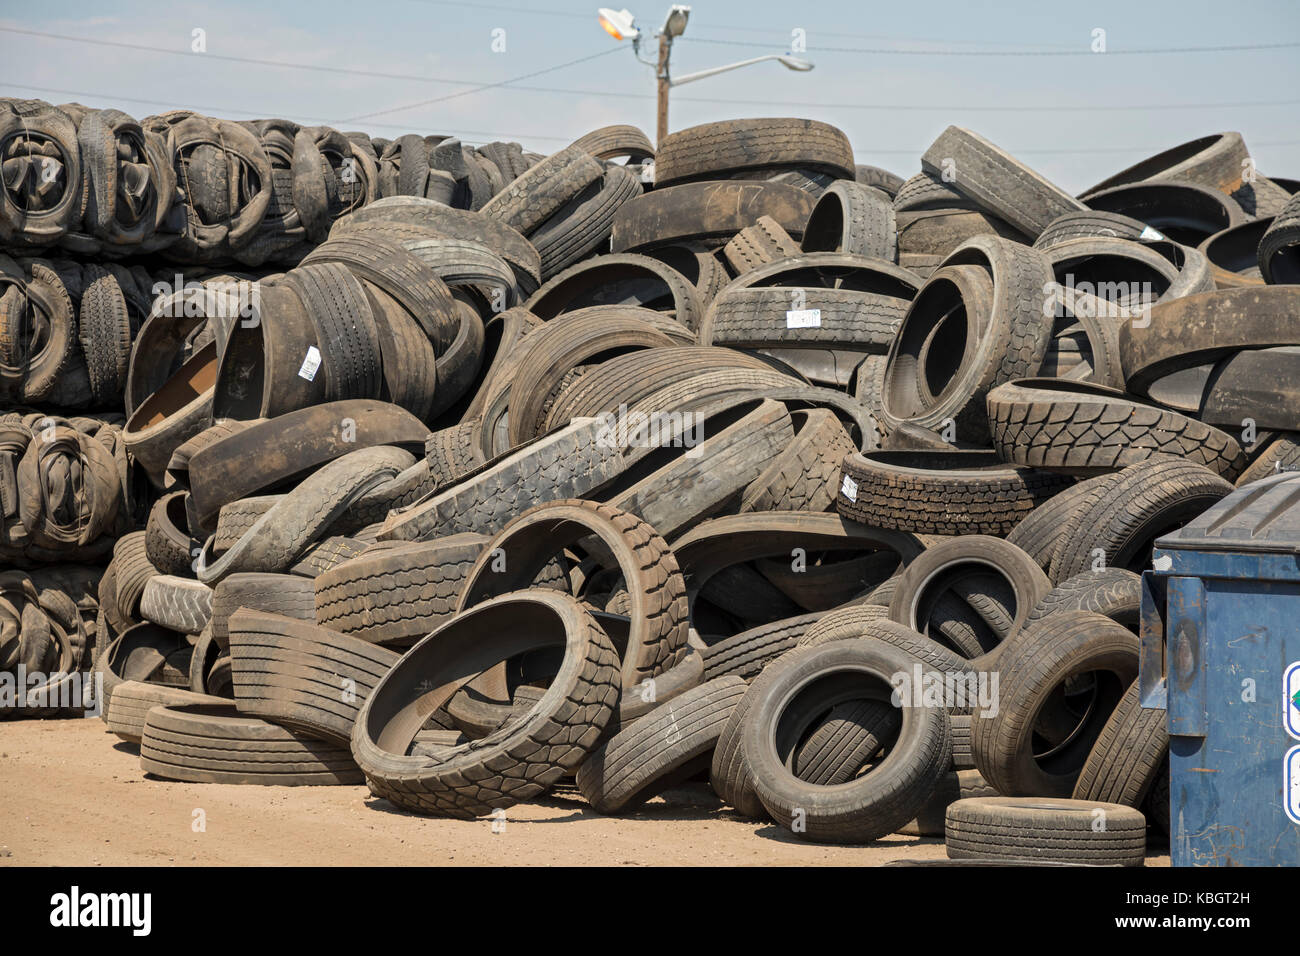 Denver, Colorado - Used tires piled up at Colorado Tire Recycling. - Stock Image